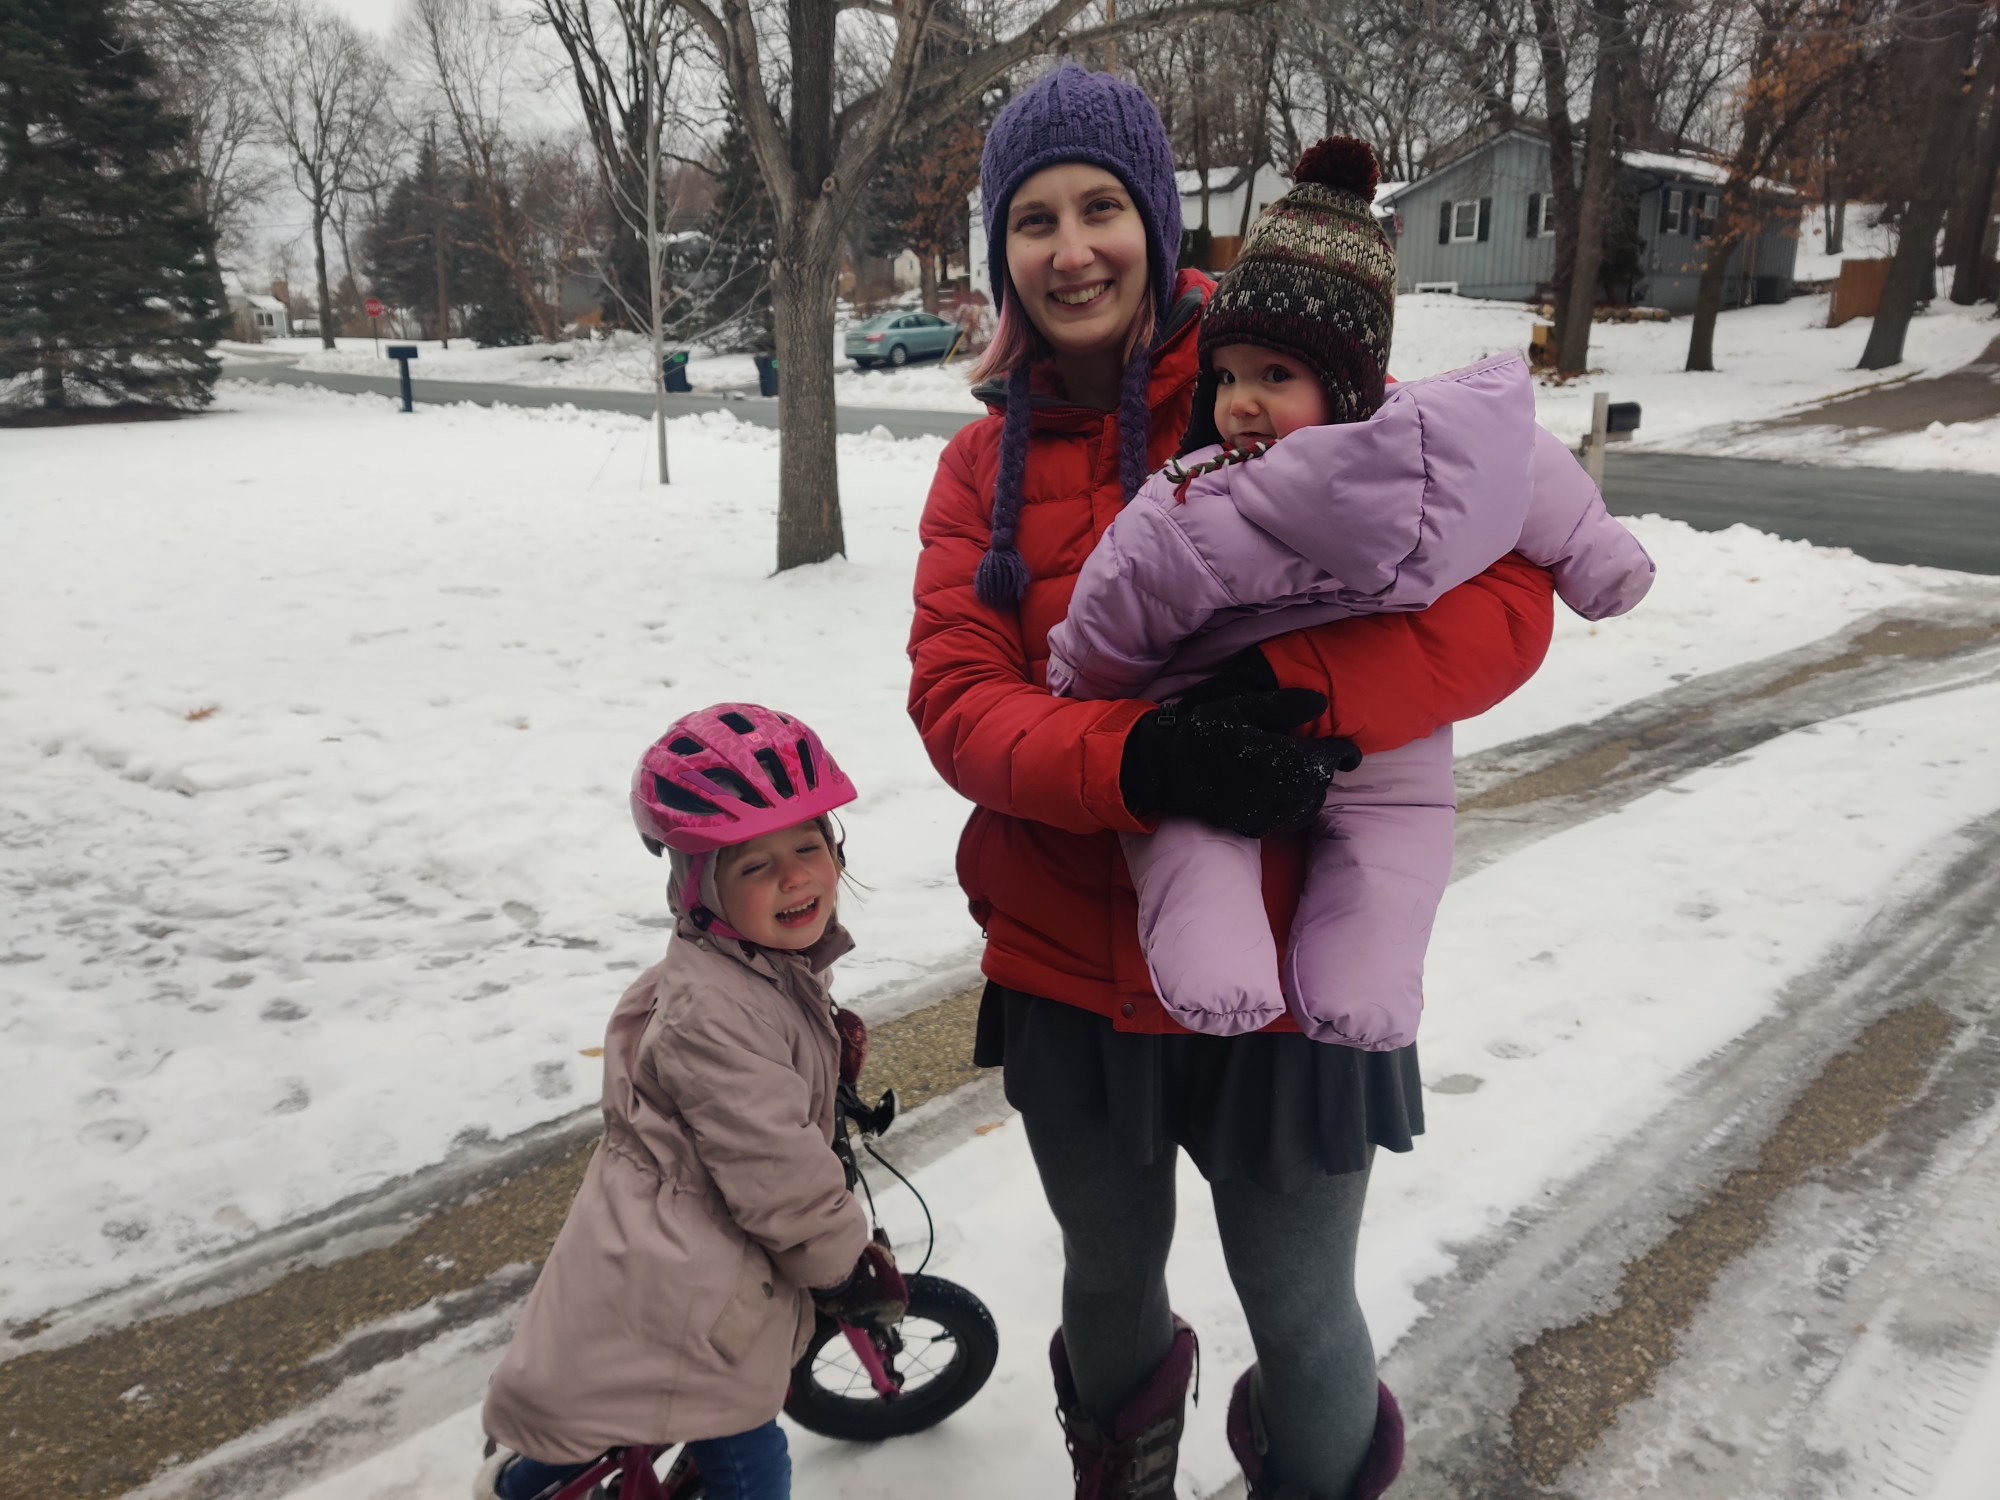 Leana and her 2 daughters in the snow